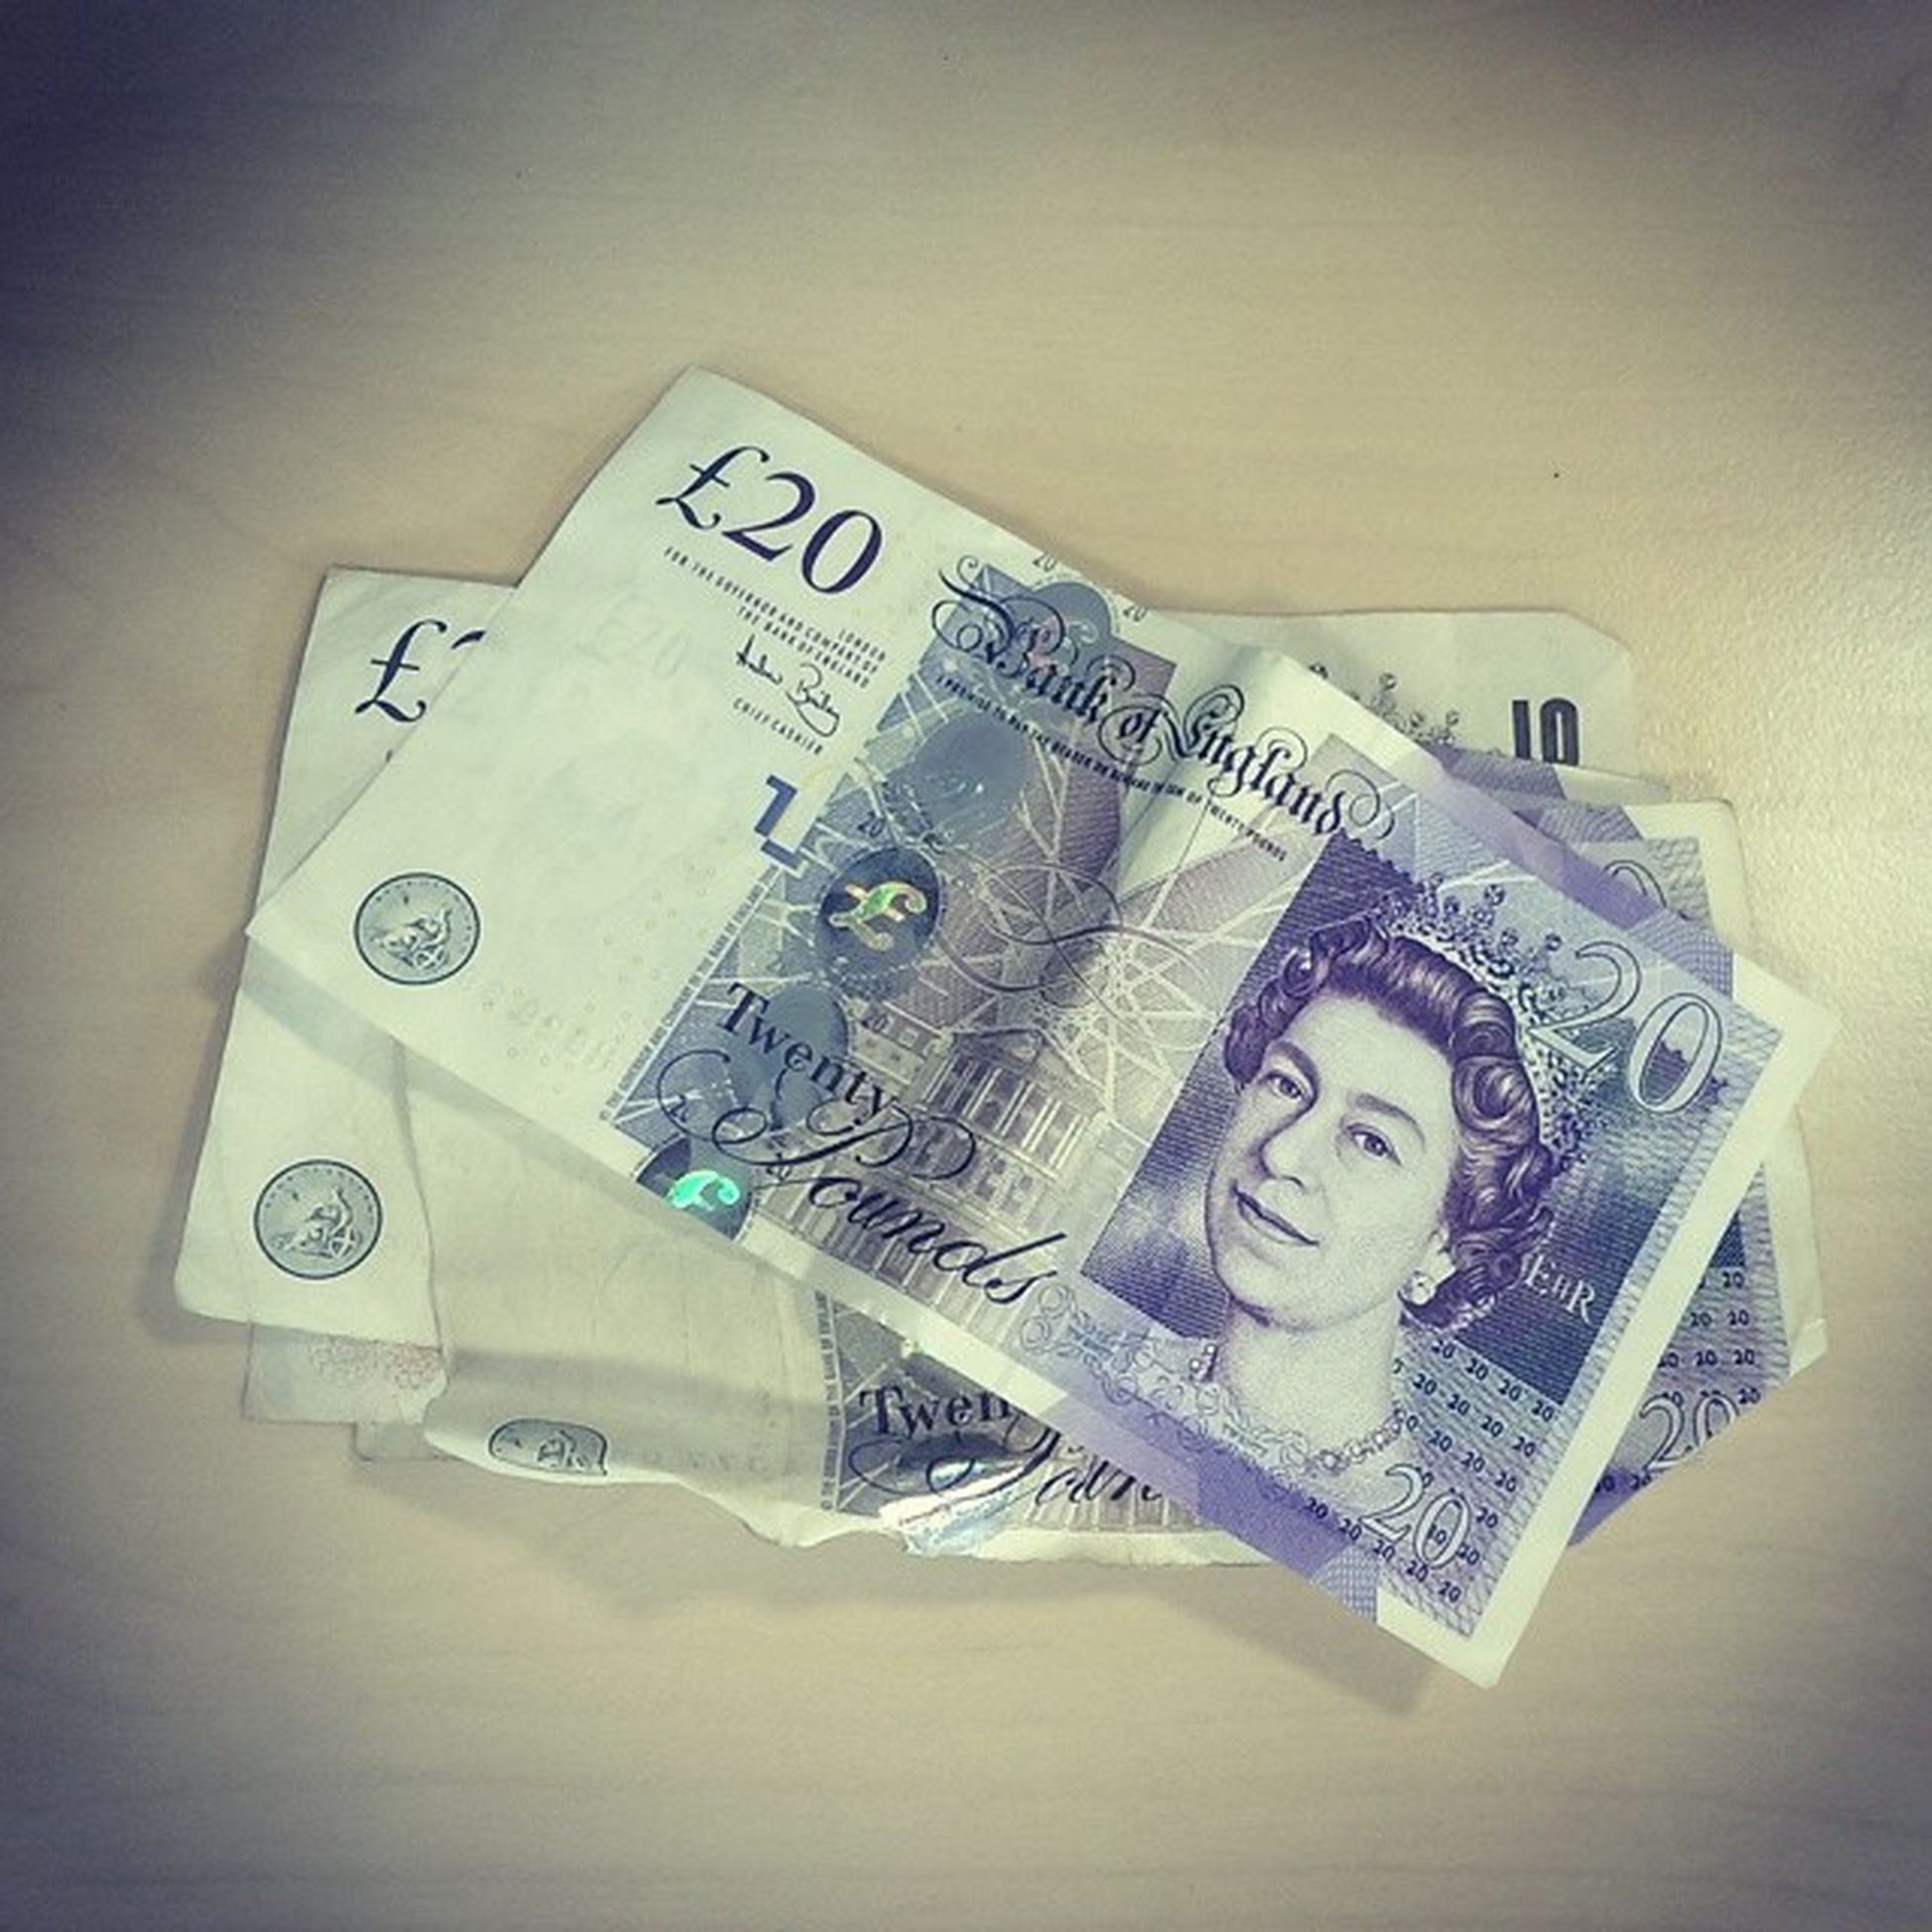 Ton. Had a bet at the start of the season with my head of dept over Arsenal or Spurs winning some silverware. Forgot all about it. He's only gone and paid up today. THIS IS LIKE WINNING THE CUP ALL OVER AGAIN. 100 Uta FOYS